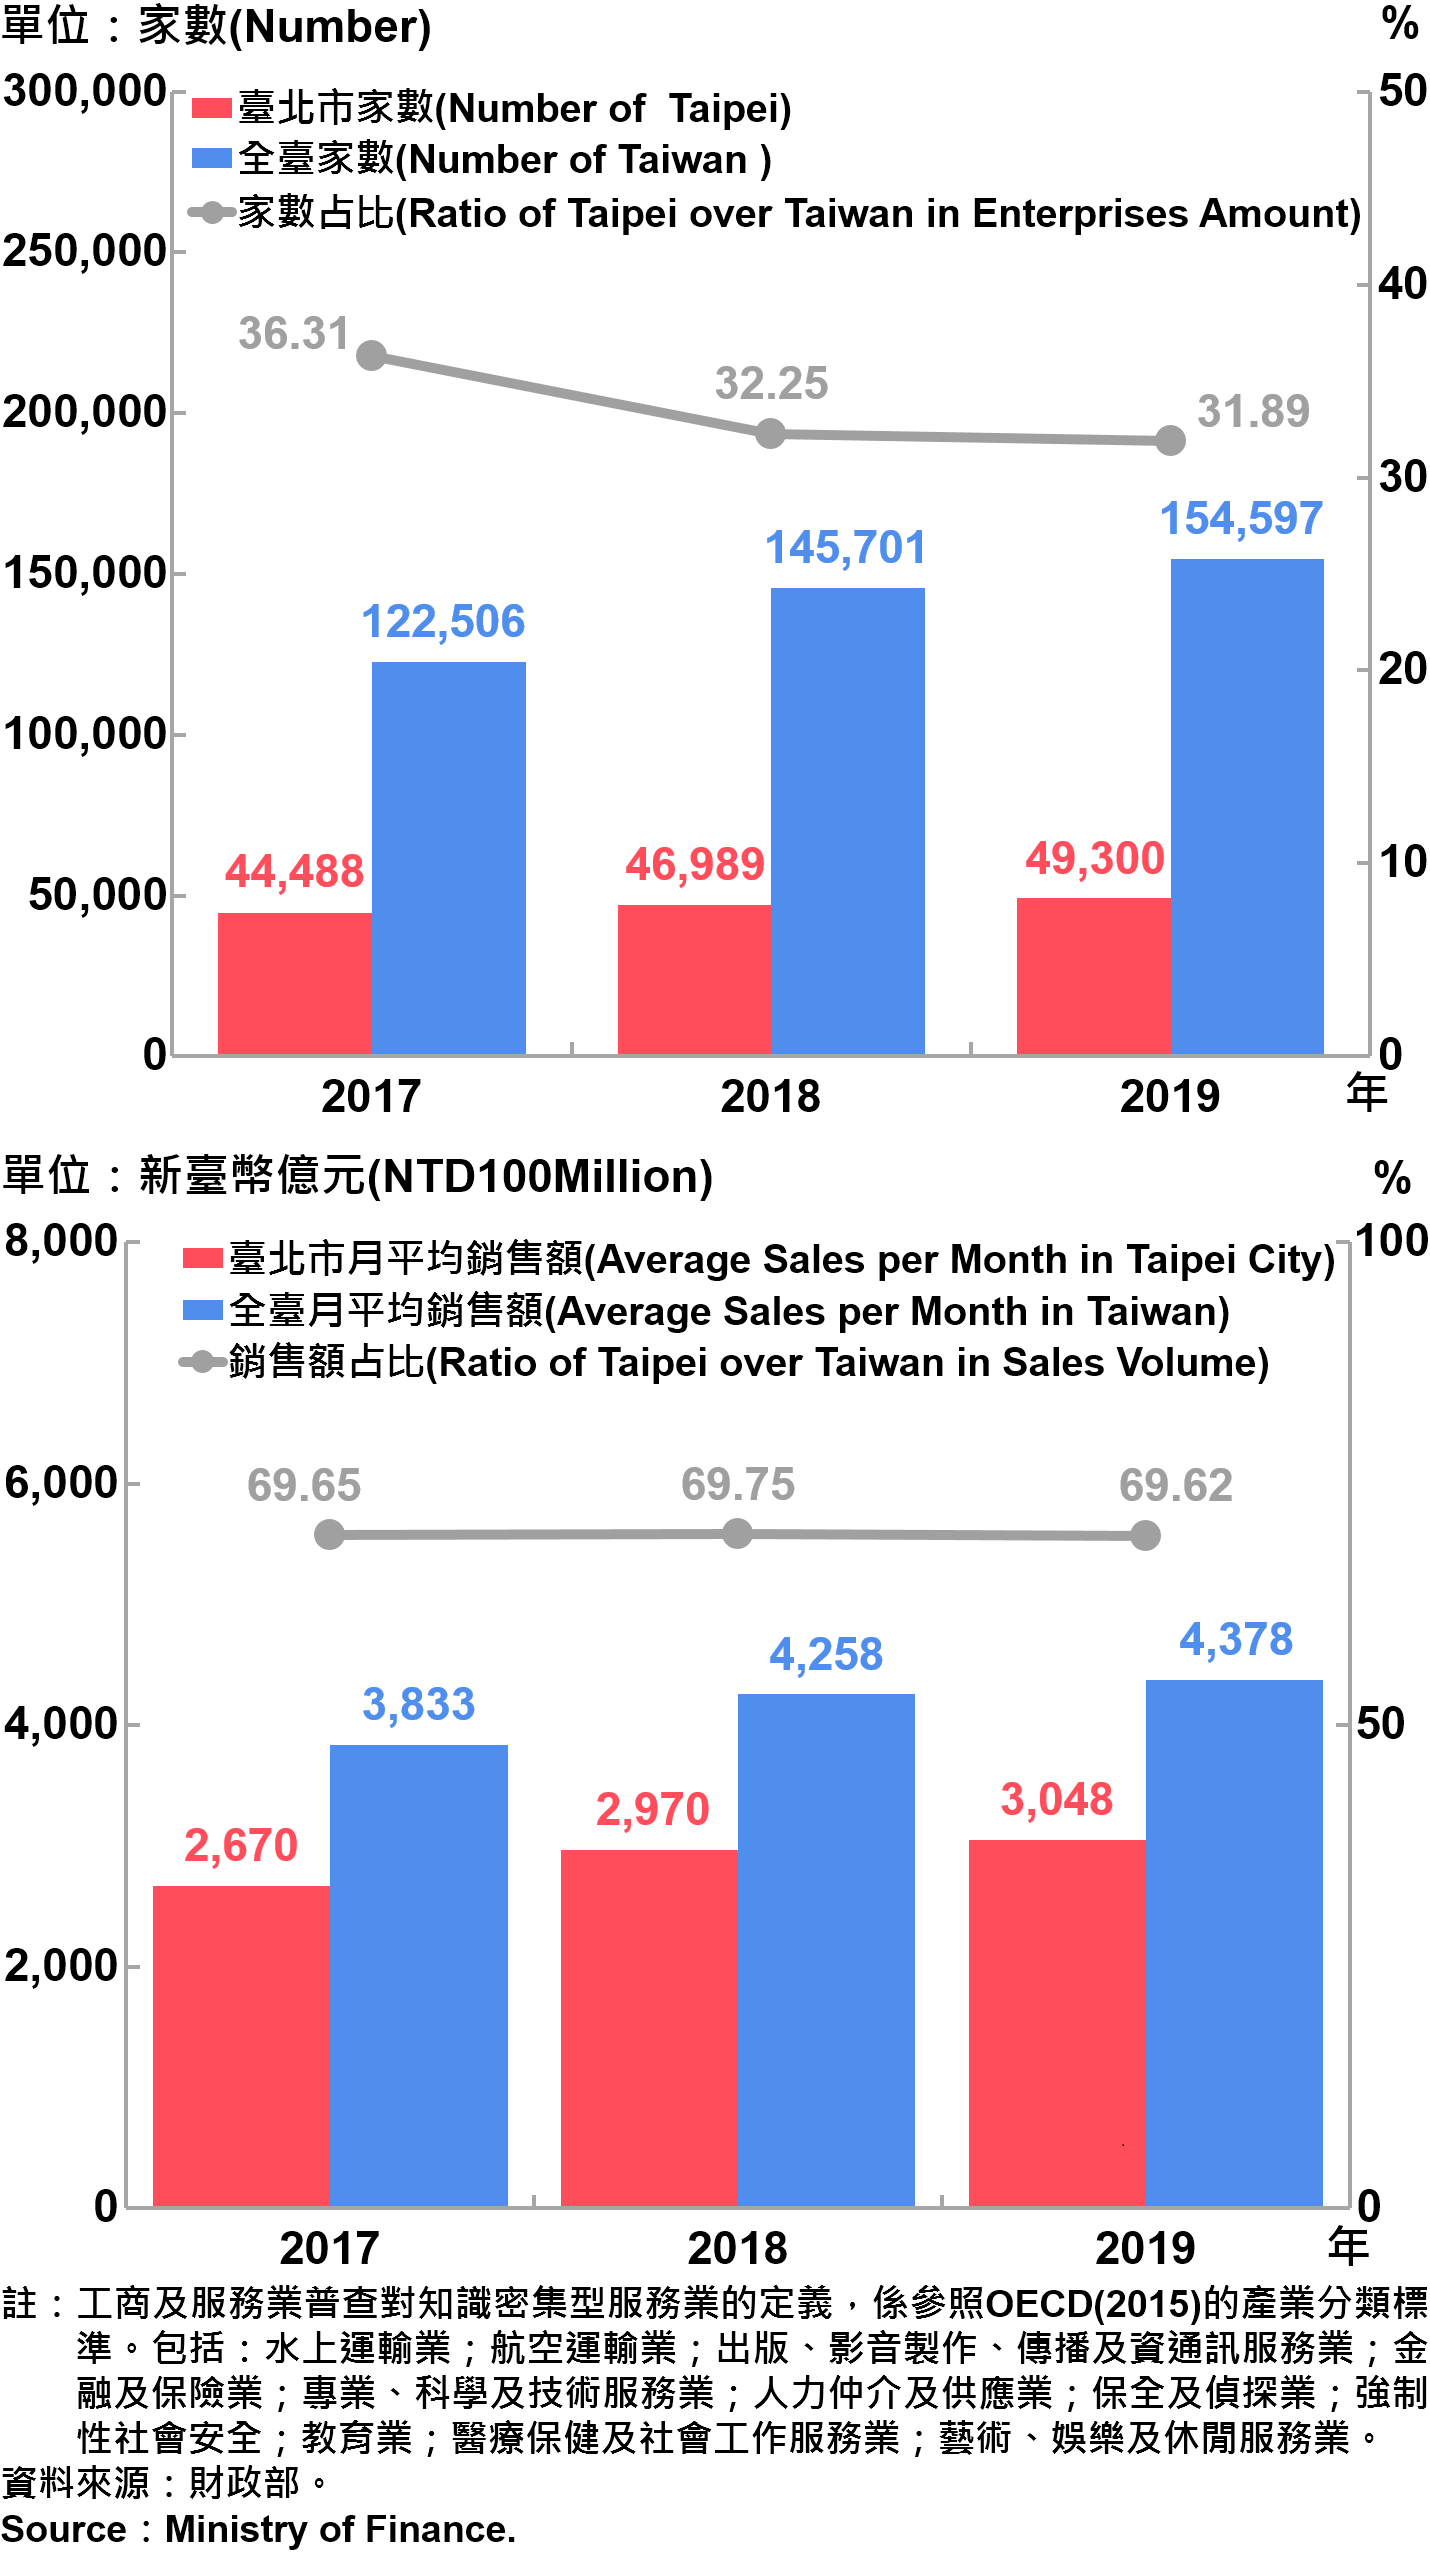 臺北市知識密集型服務業之家數及銷售額—2019 Number and Sales of Knowledge Intensive Service Industry in Taipei City—2019